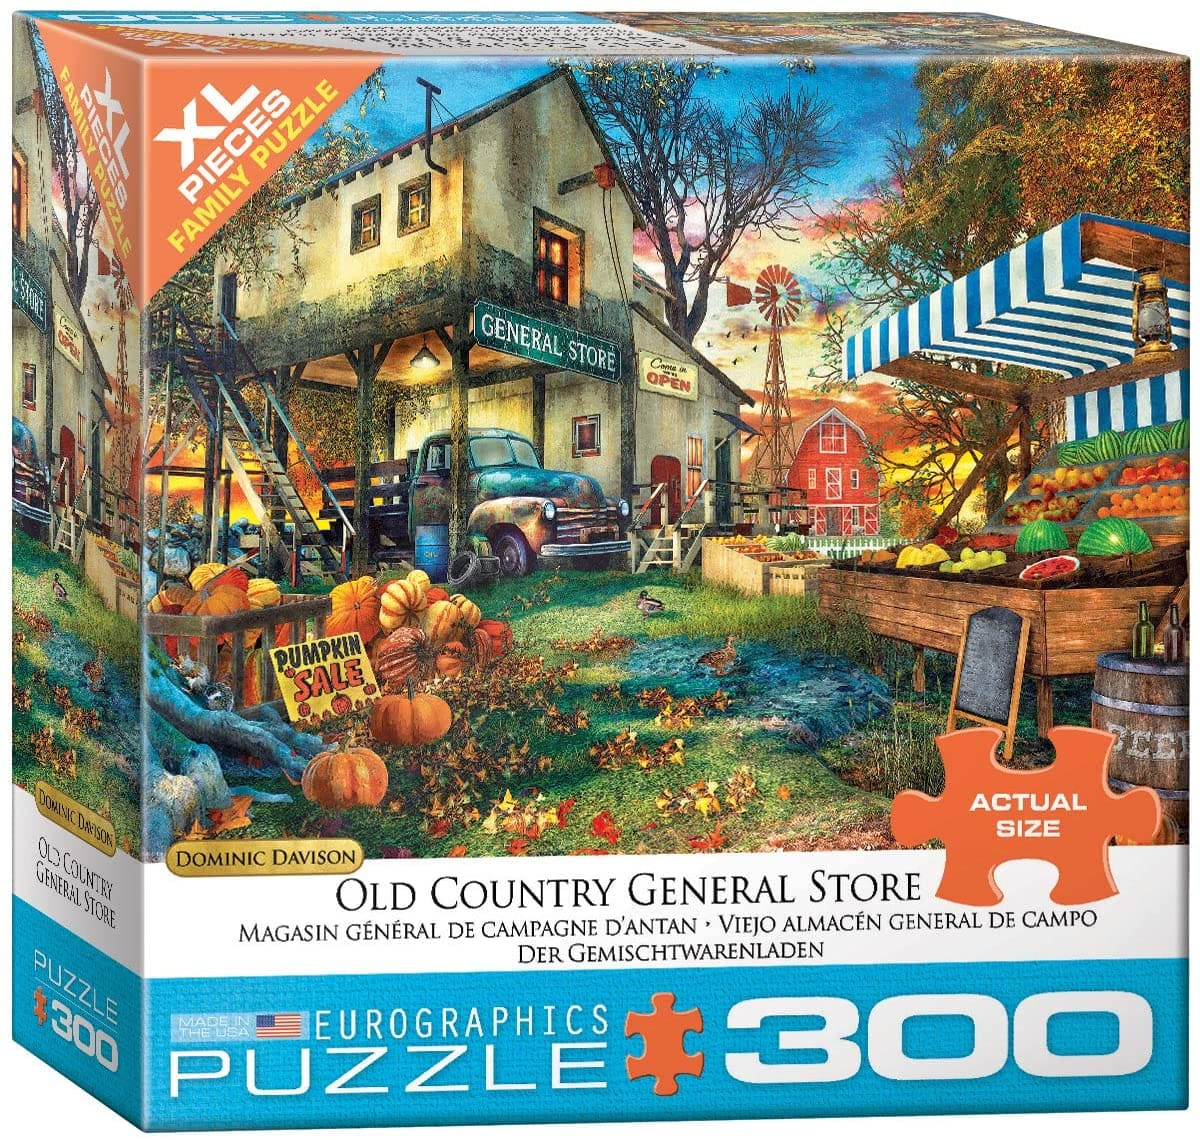 EuroGraphics 300-Piece Old Country General Store Puzzle $6.82 + FS w/ Prime or on orders of $25+